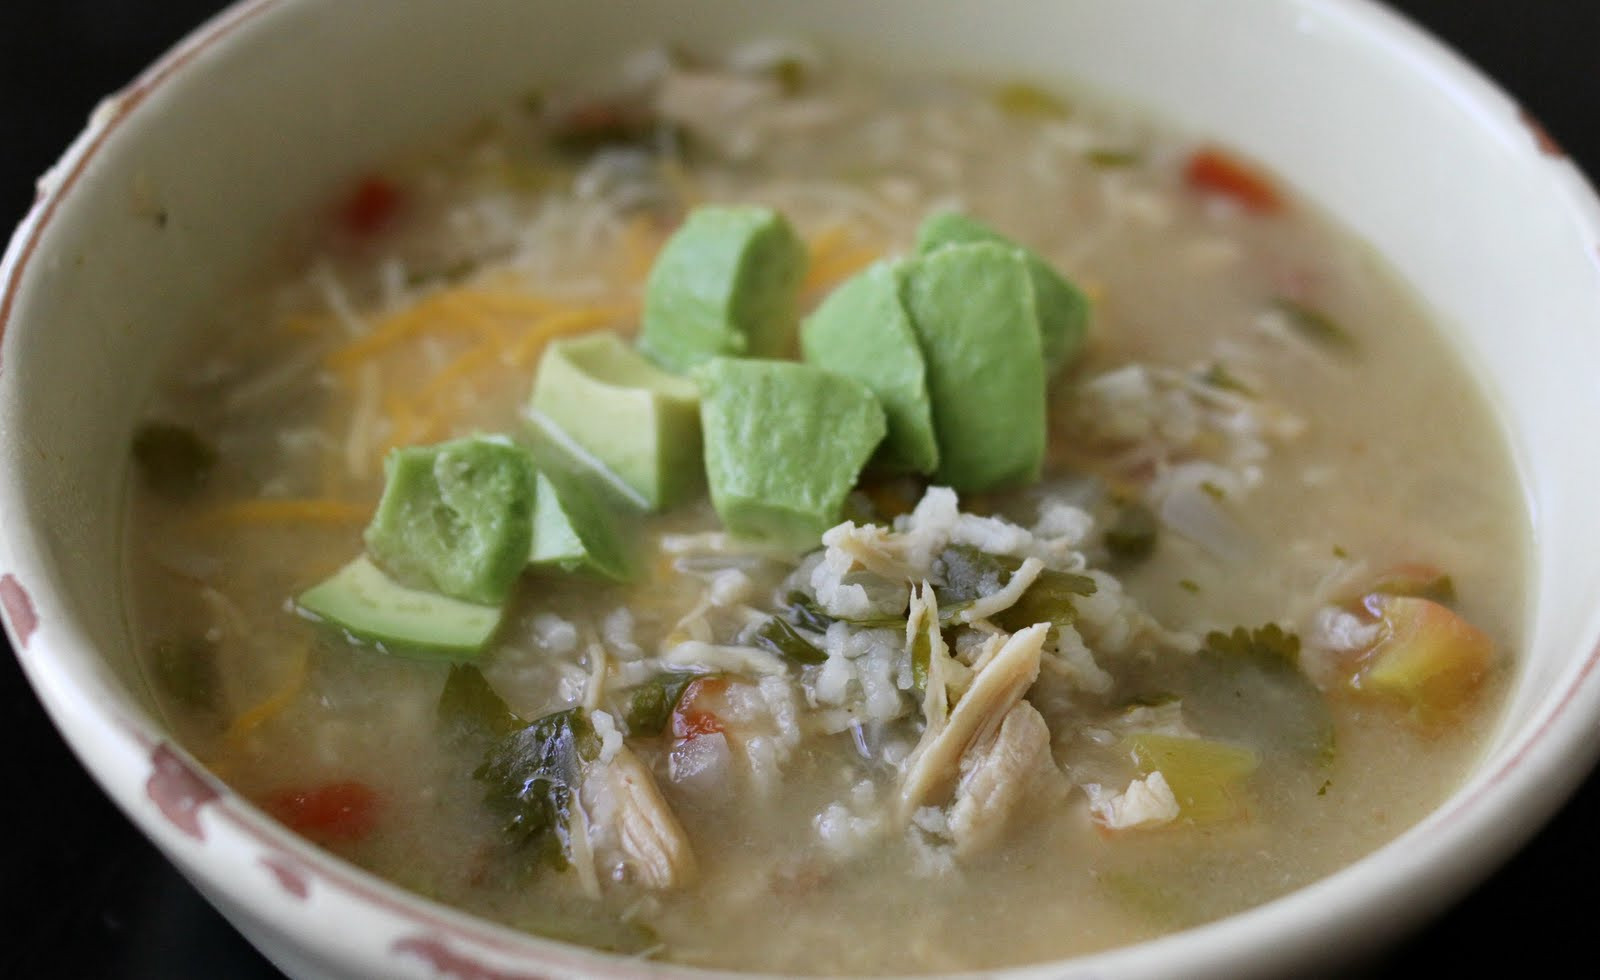 Green Chili Chicken Soup  My Menu Green Chili Chicken & Lime Soup